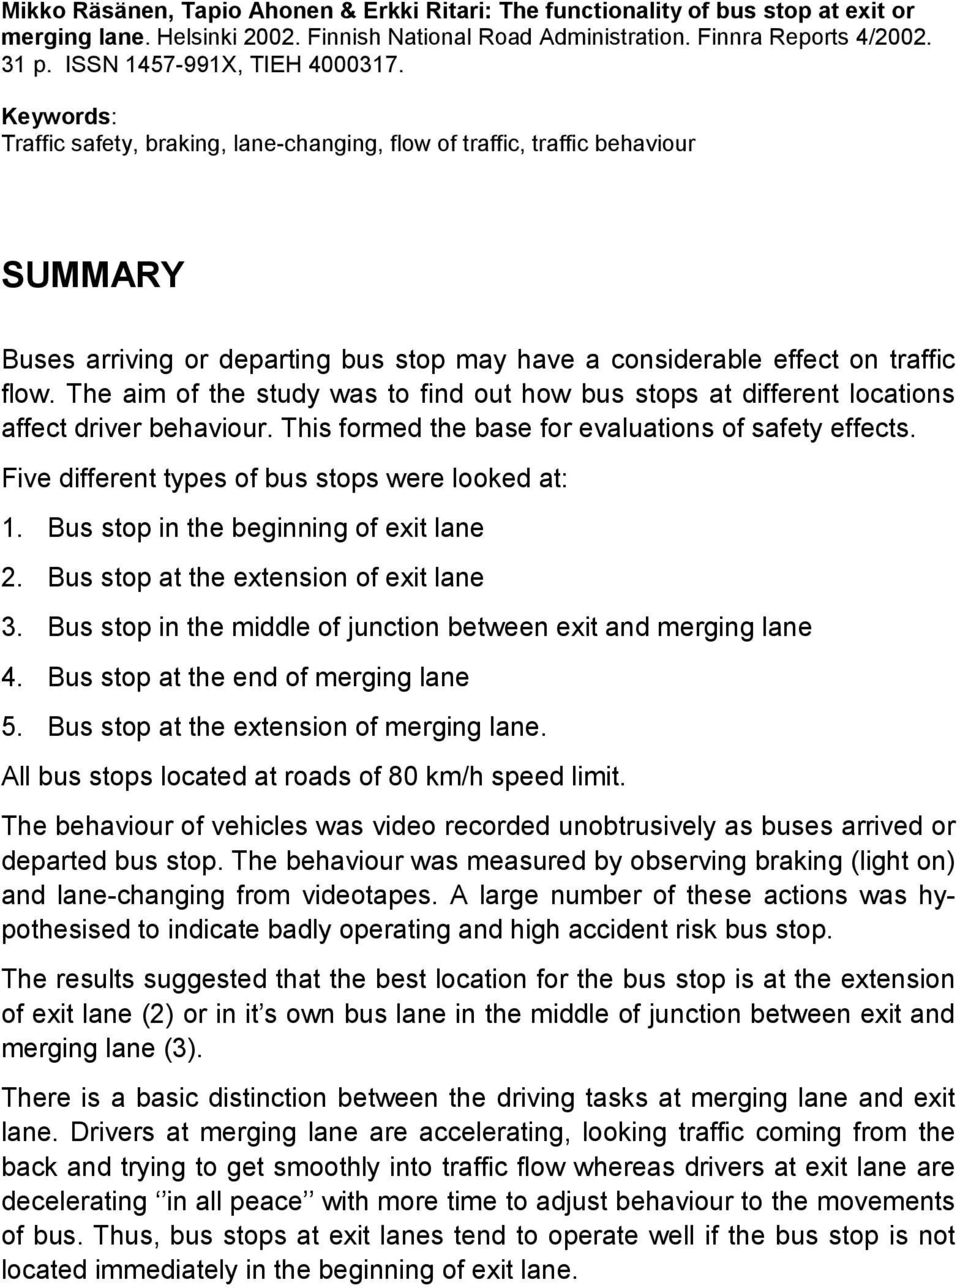 Keywords: Traffic safety, braking, lane-changing, flow of traffic, traffic behaviour SUMMARY Buses arriving or departing bus stop may have a considerable effect on traffic flow.